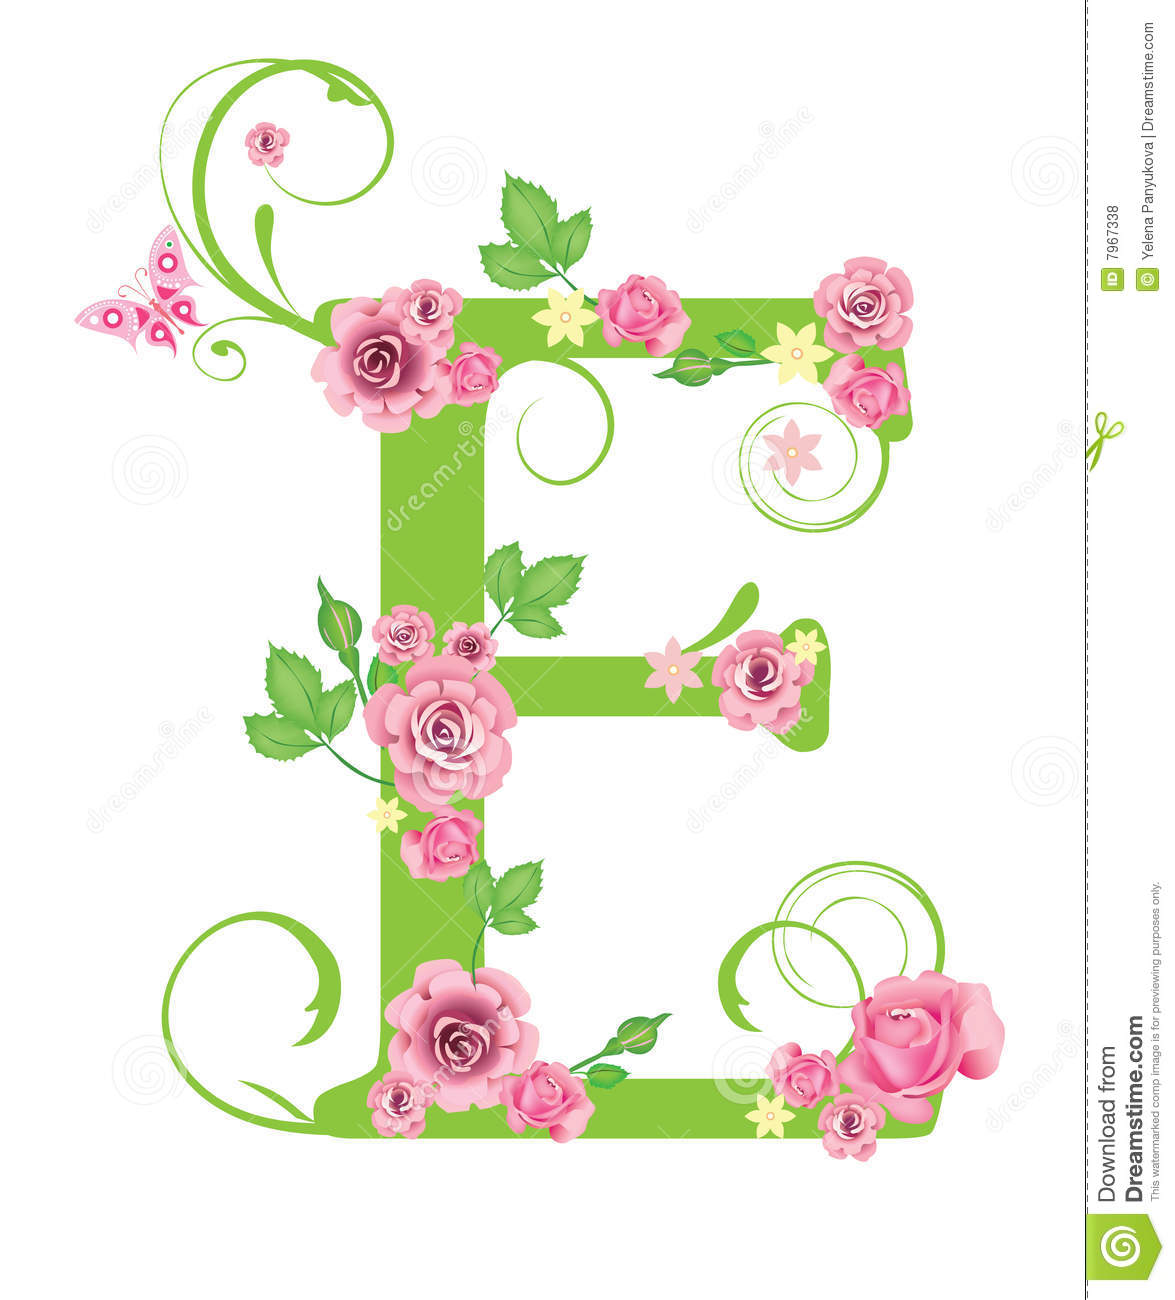 Plante En 6 Lettres Letter E With Roses Stock Vector Illustration Of Plant